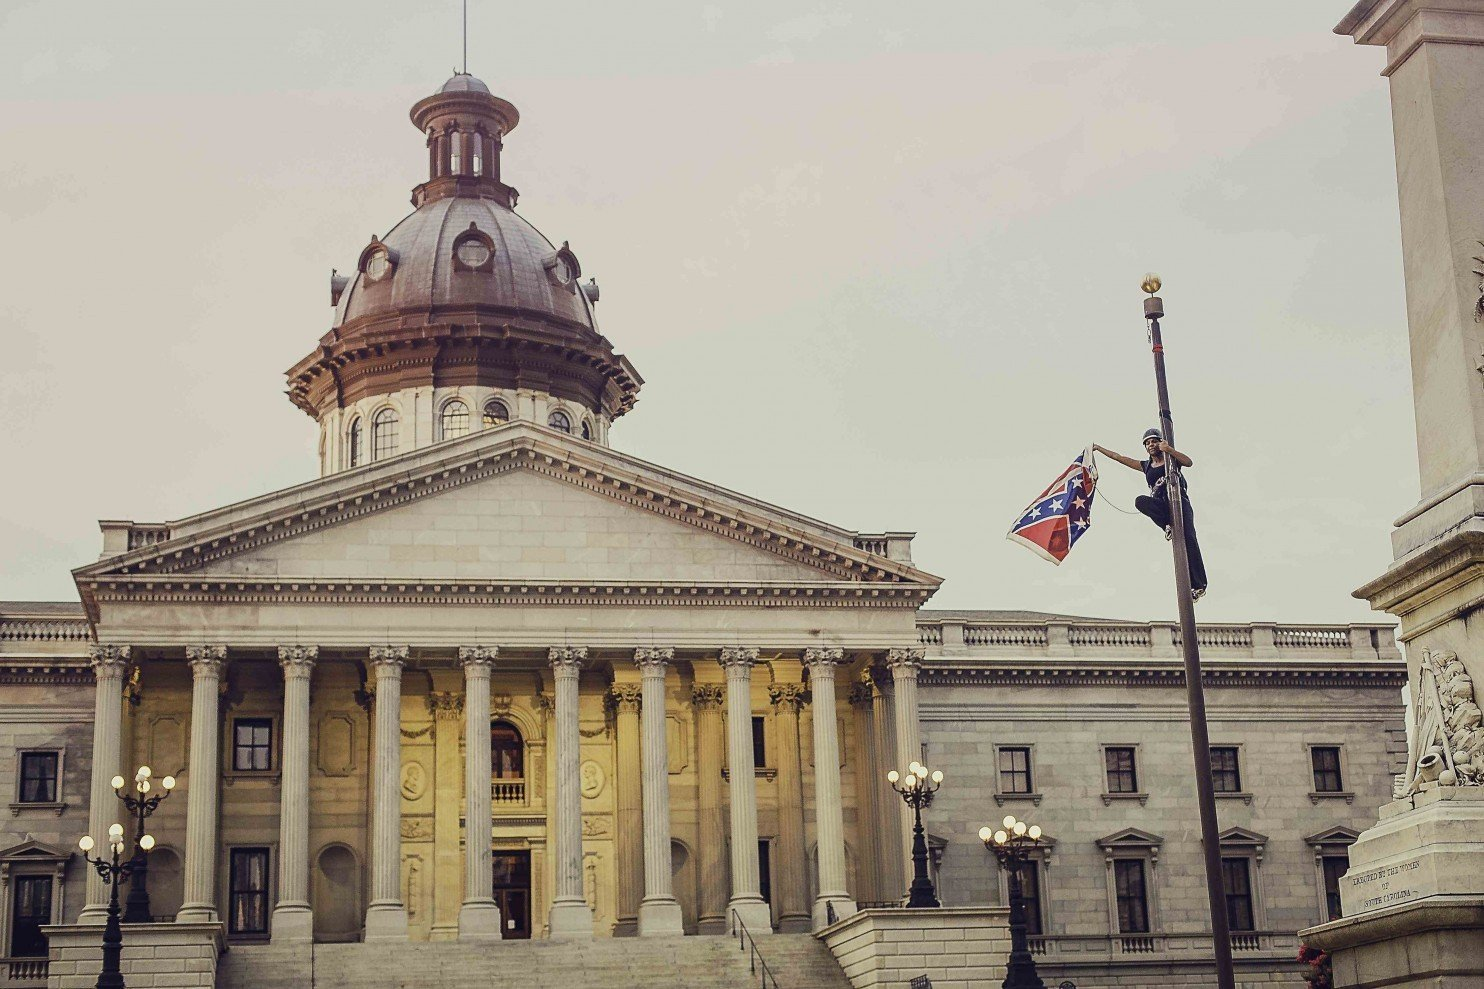 Bree Newsome, Who Pulled Down S.C. Confederate Flag in 2015 ...